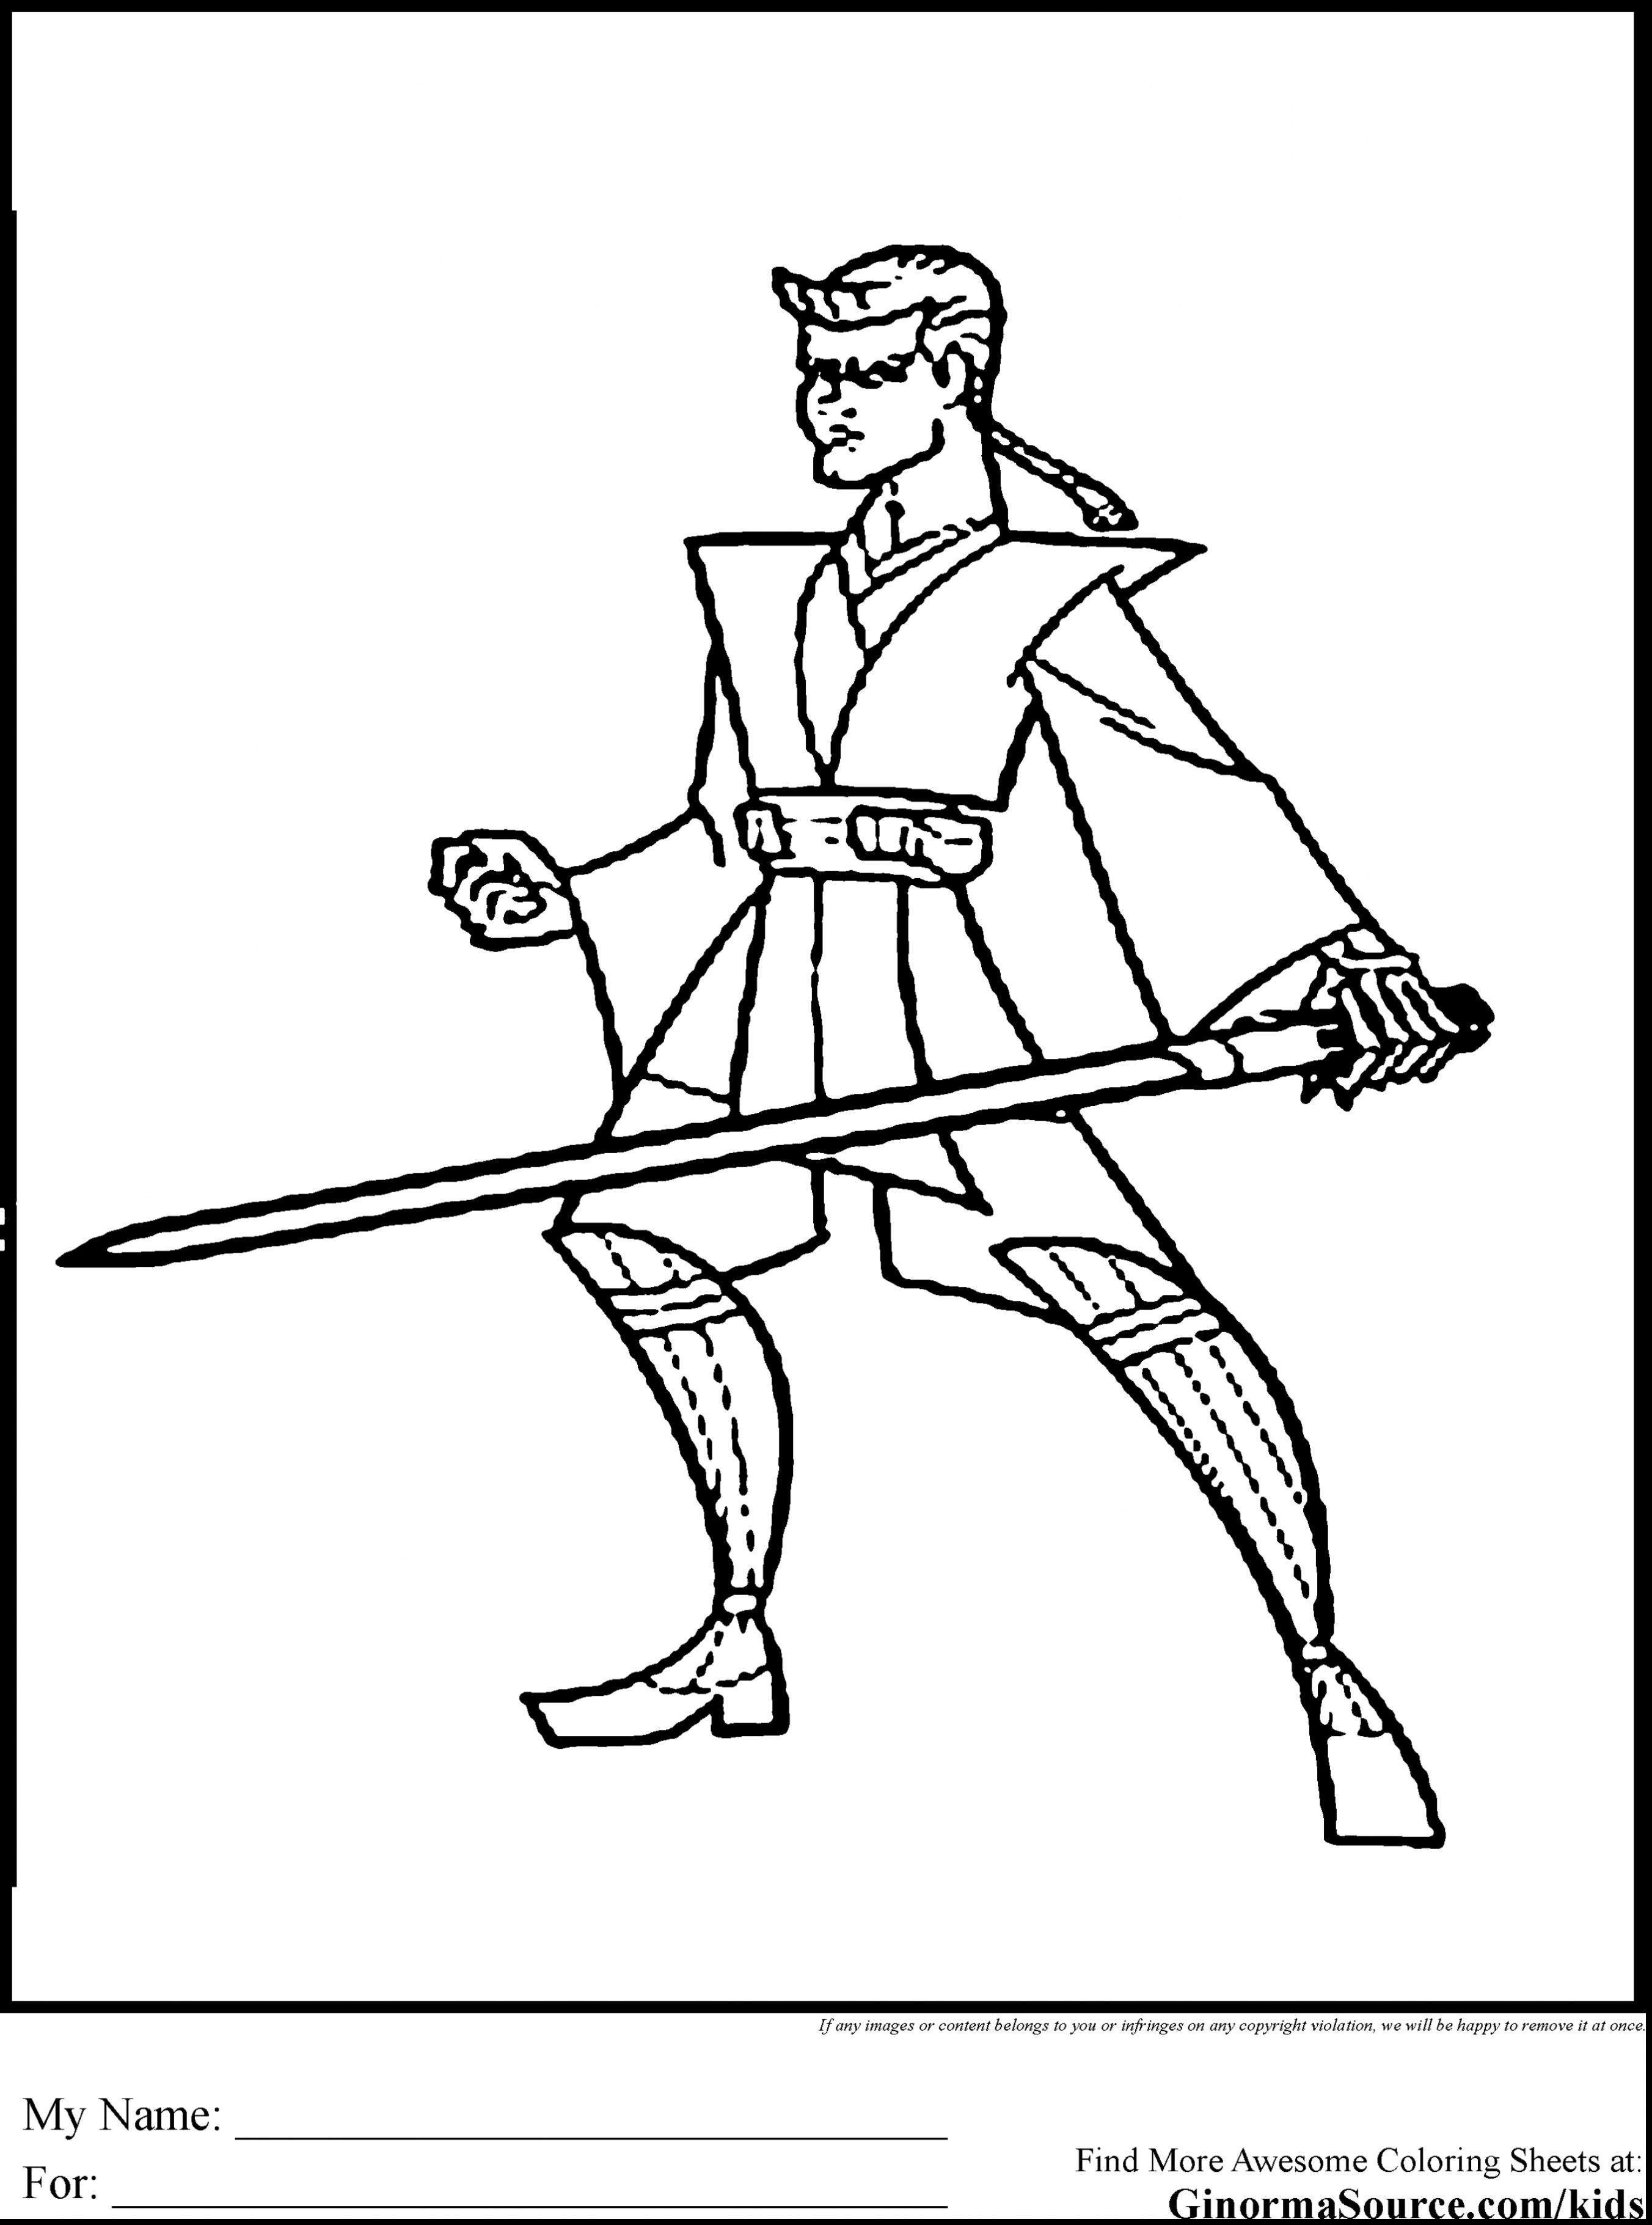 Star Wars the Clone Wars Ausmalbilder Einzigartig the Clone Wars Coloring Pages Star Wars Christmas Coloring Pages Neu Stock